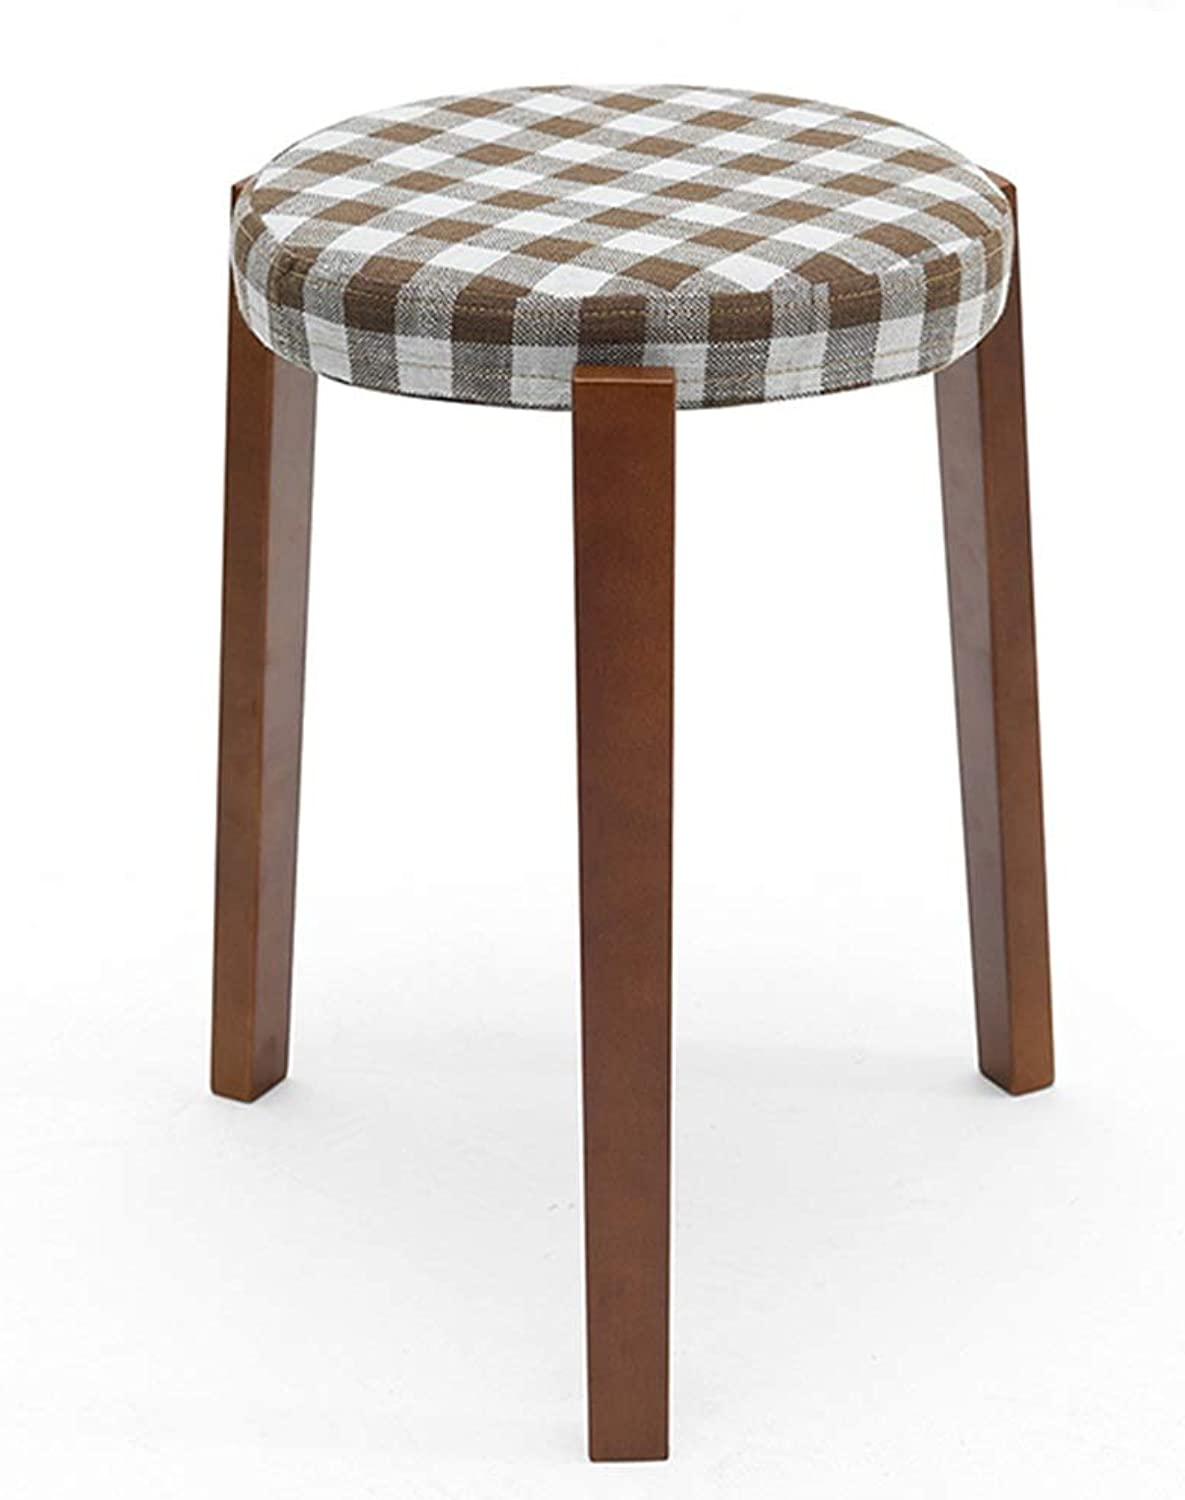 Solid Wood Stool, Fabric Dining Stool Fashion Creative Small Bench Simple Stool Stool Dressing Stool Bearing 150 Kg (color   Plaid, Size   Walnut Legs)